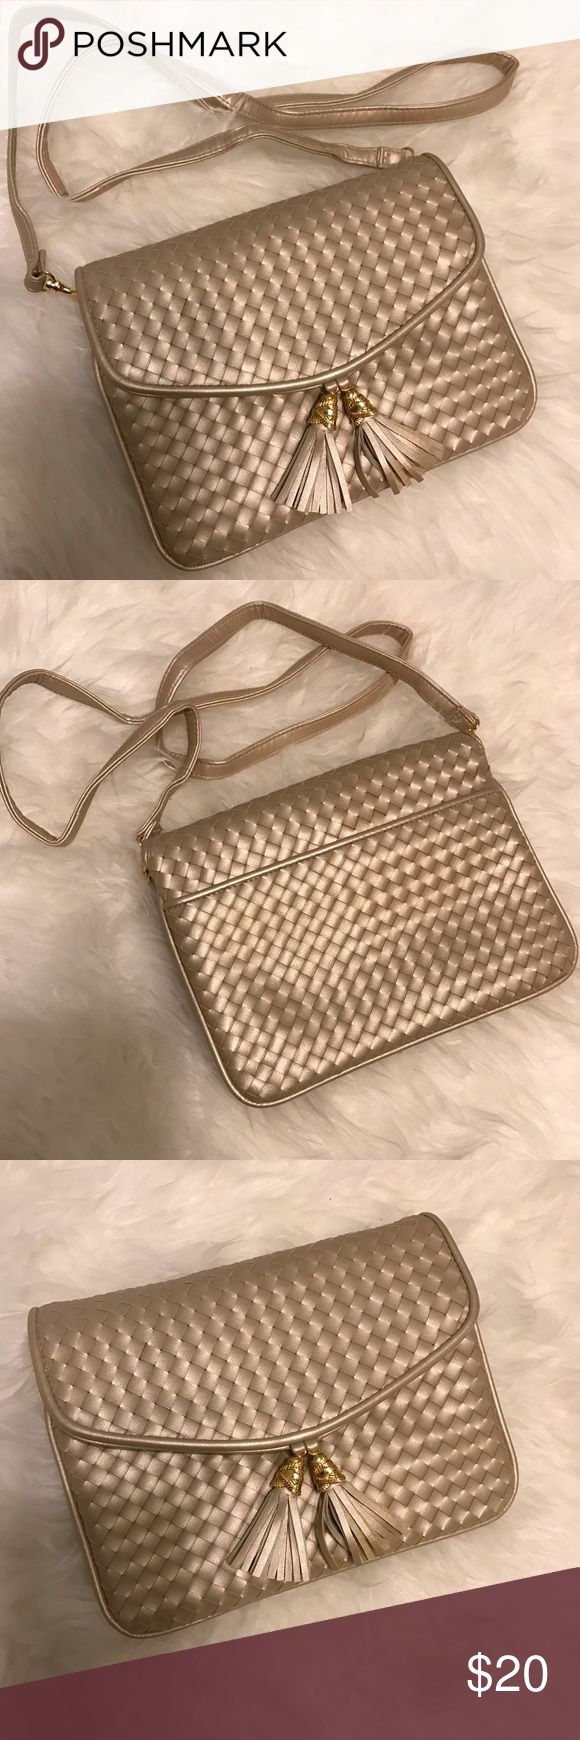 NWOT Classic clutch/handbag with detachable strap. NWOT Classic, woven (basket weave) neutral-toned, light beige, clutch/handbag with tassels detail. Very elegant. Bags Shoulder Bags